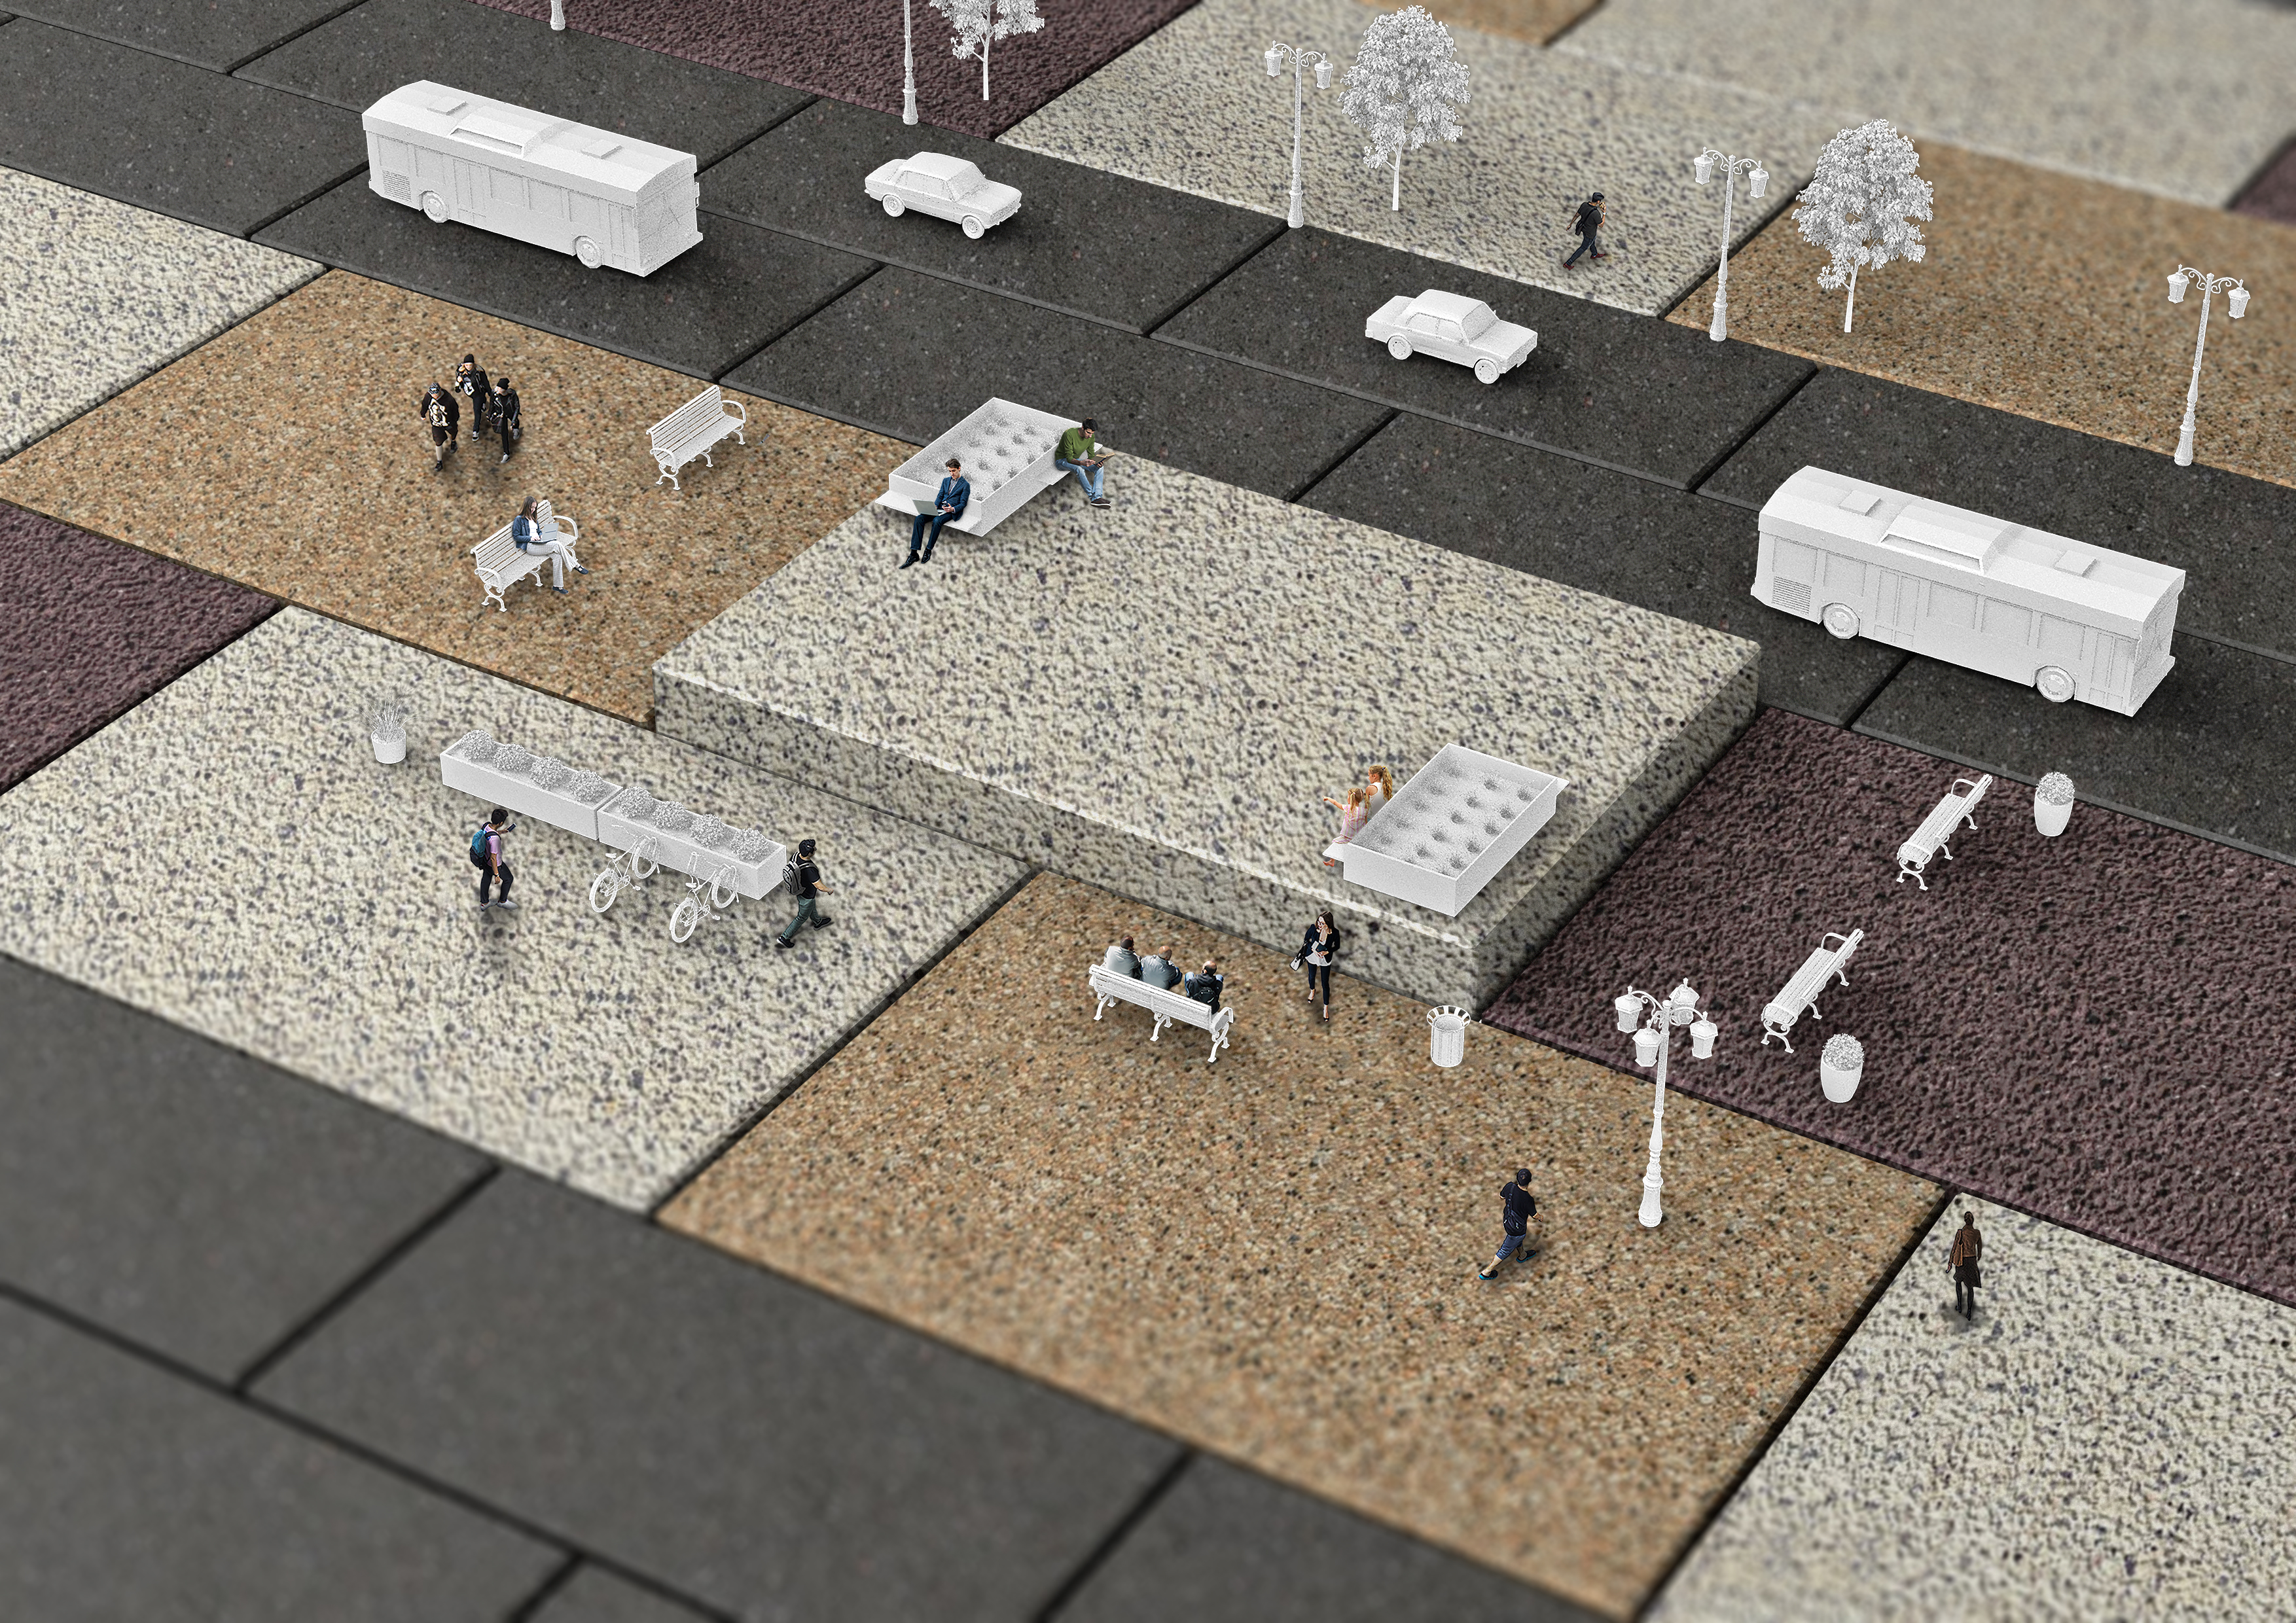 Modal paving is ideal for use in multi-functional public spaces